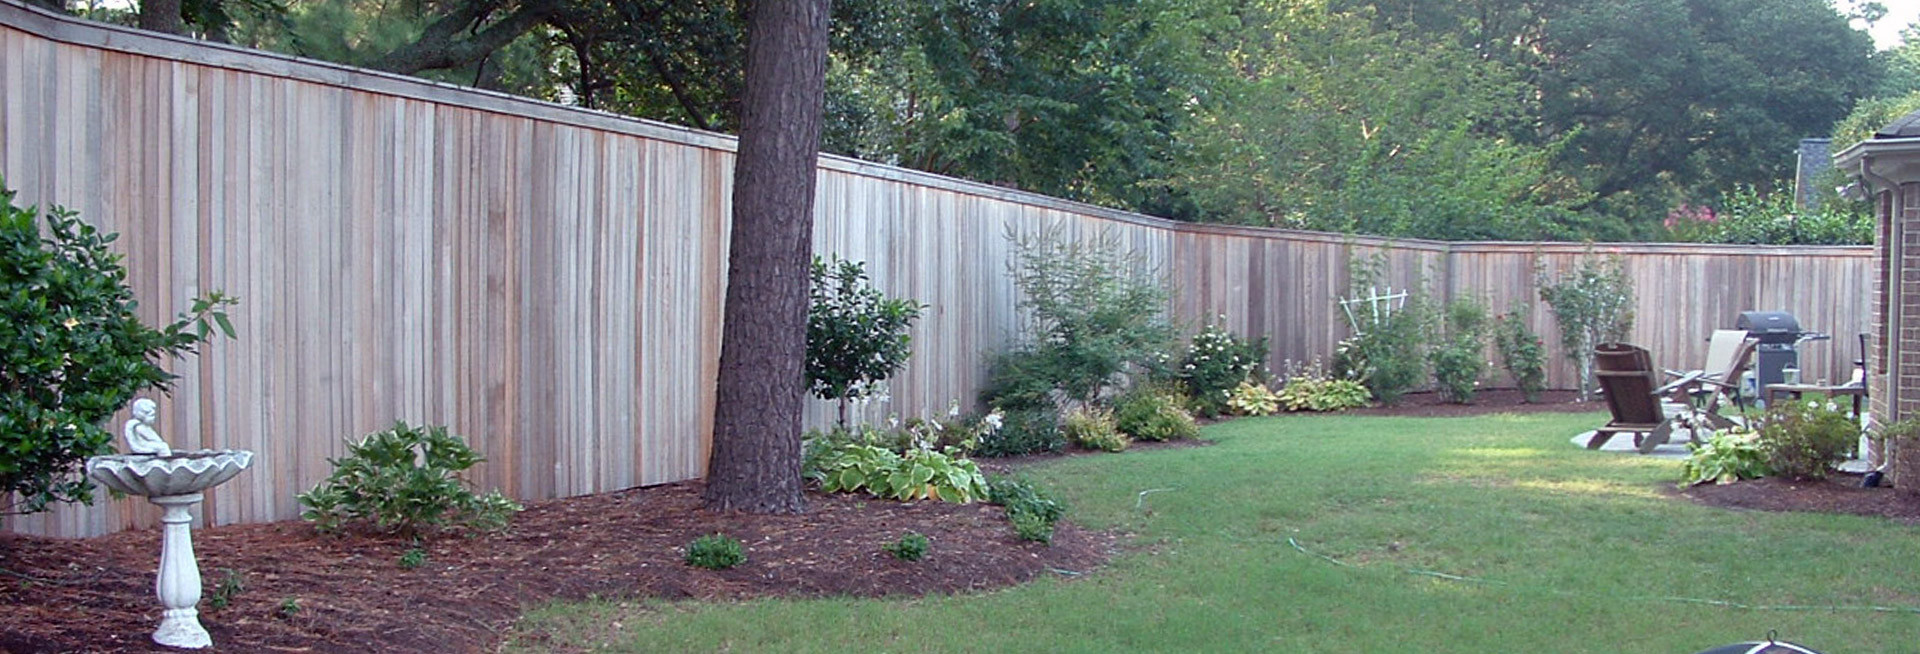 Residential Fencing Virginia Beach